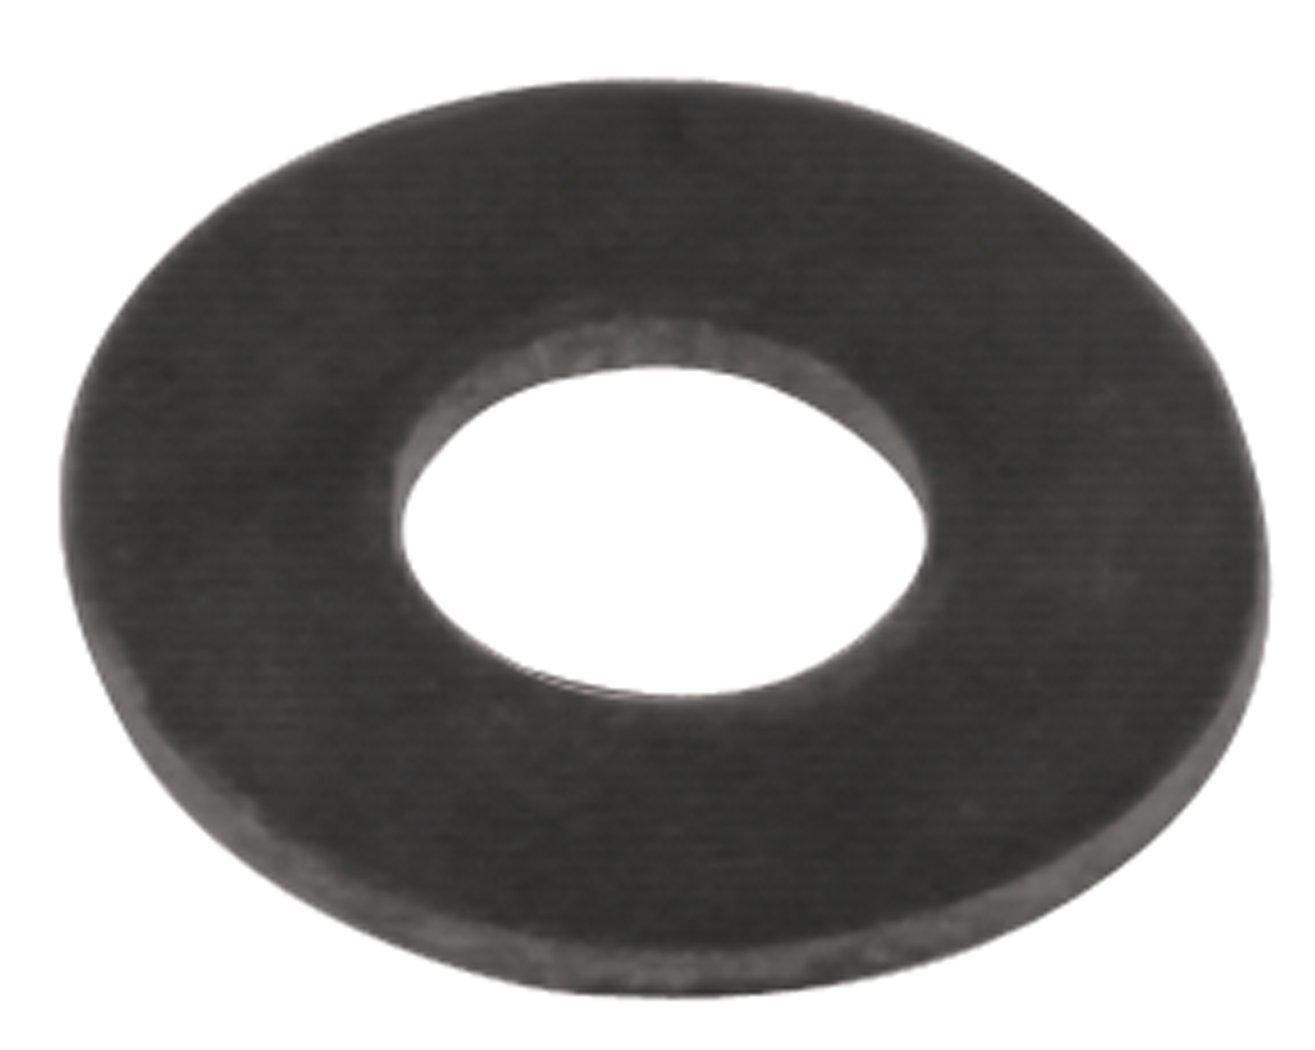 The Hillman Group The Hillman Group 4329 3/4 ID x 2-1/4 OD x 1/8 In. Large Neoprene Washer (6-Pack) by The Hillman Group (Image #1)